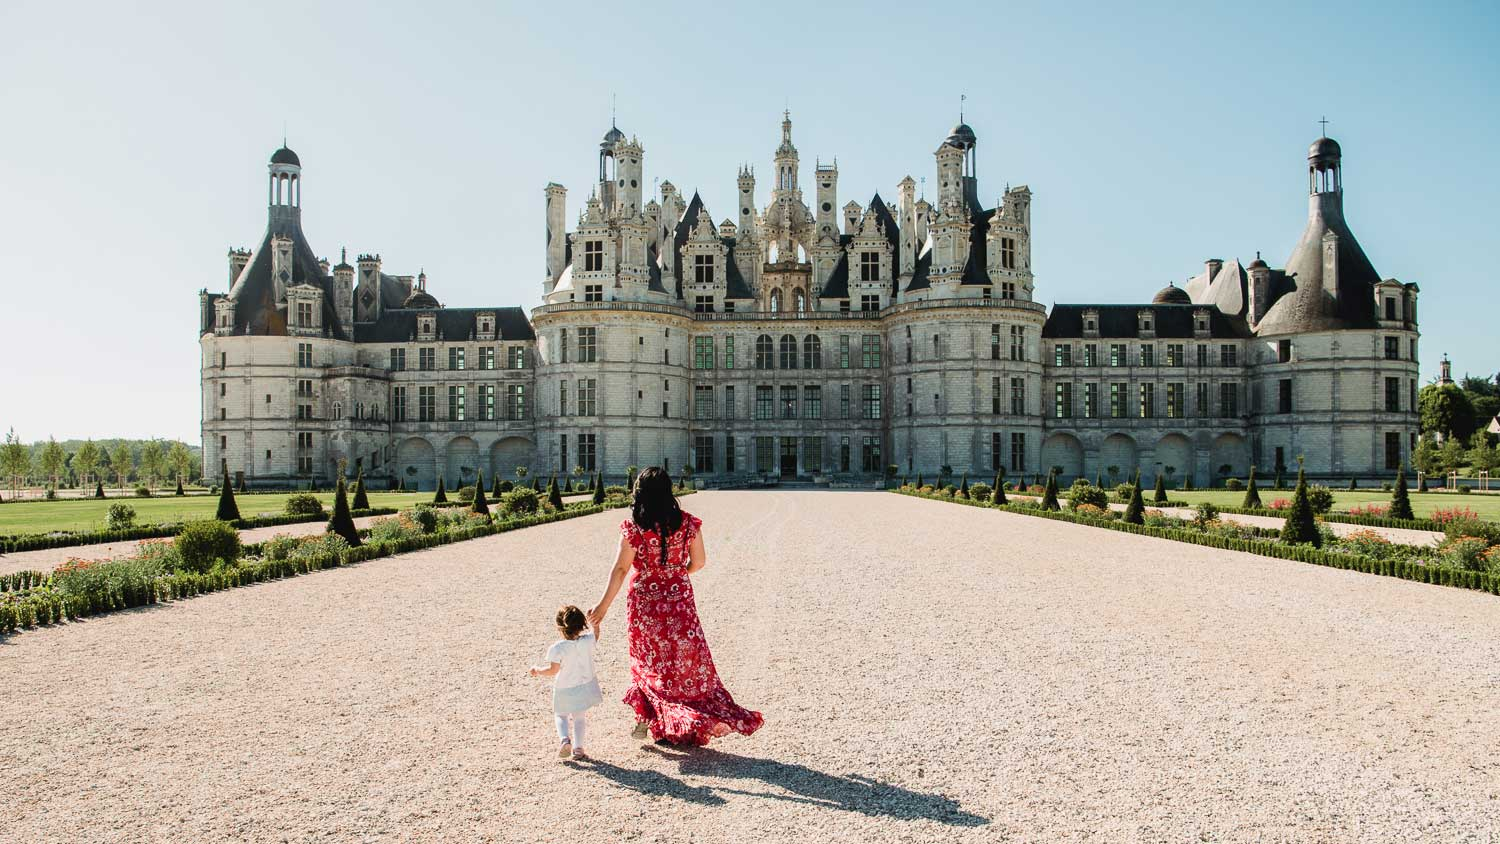 Inspired partly by the amazing race, our slow travel journey took us to chateau chambord.